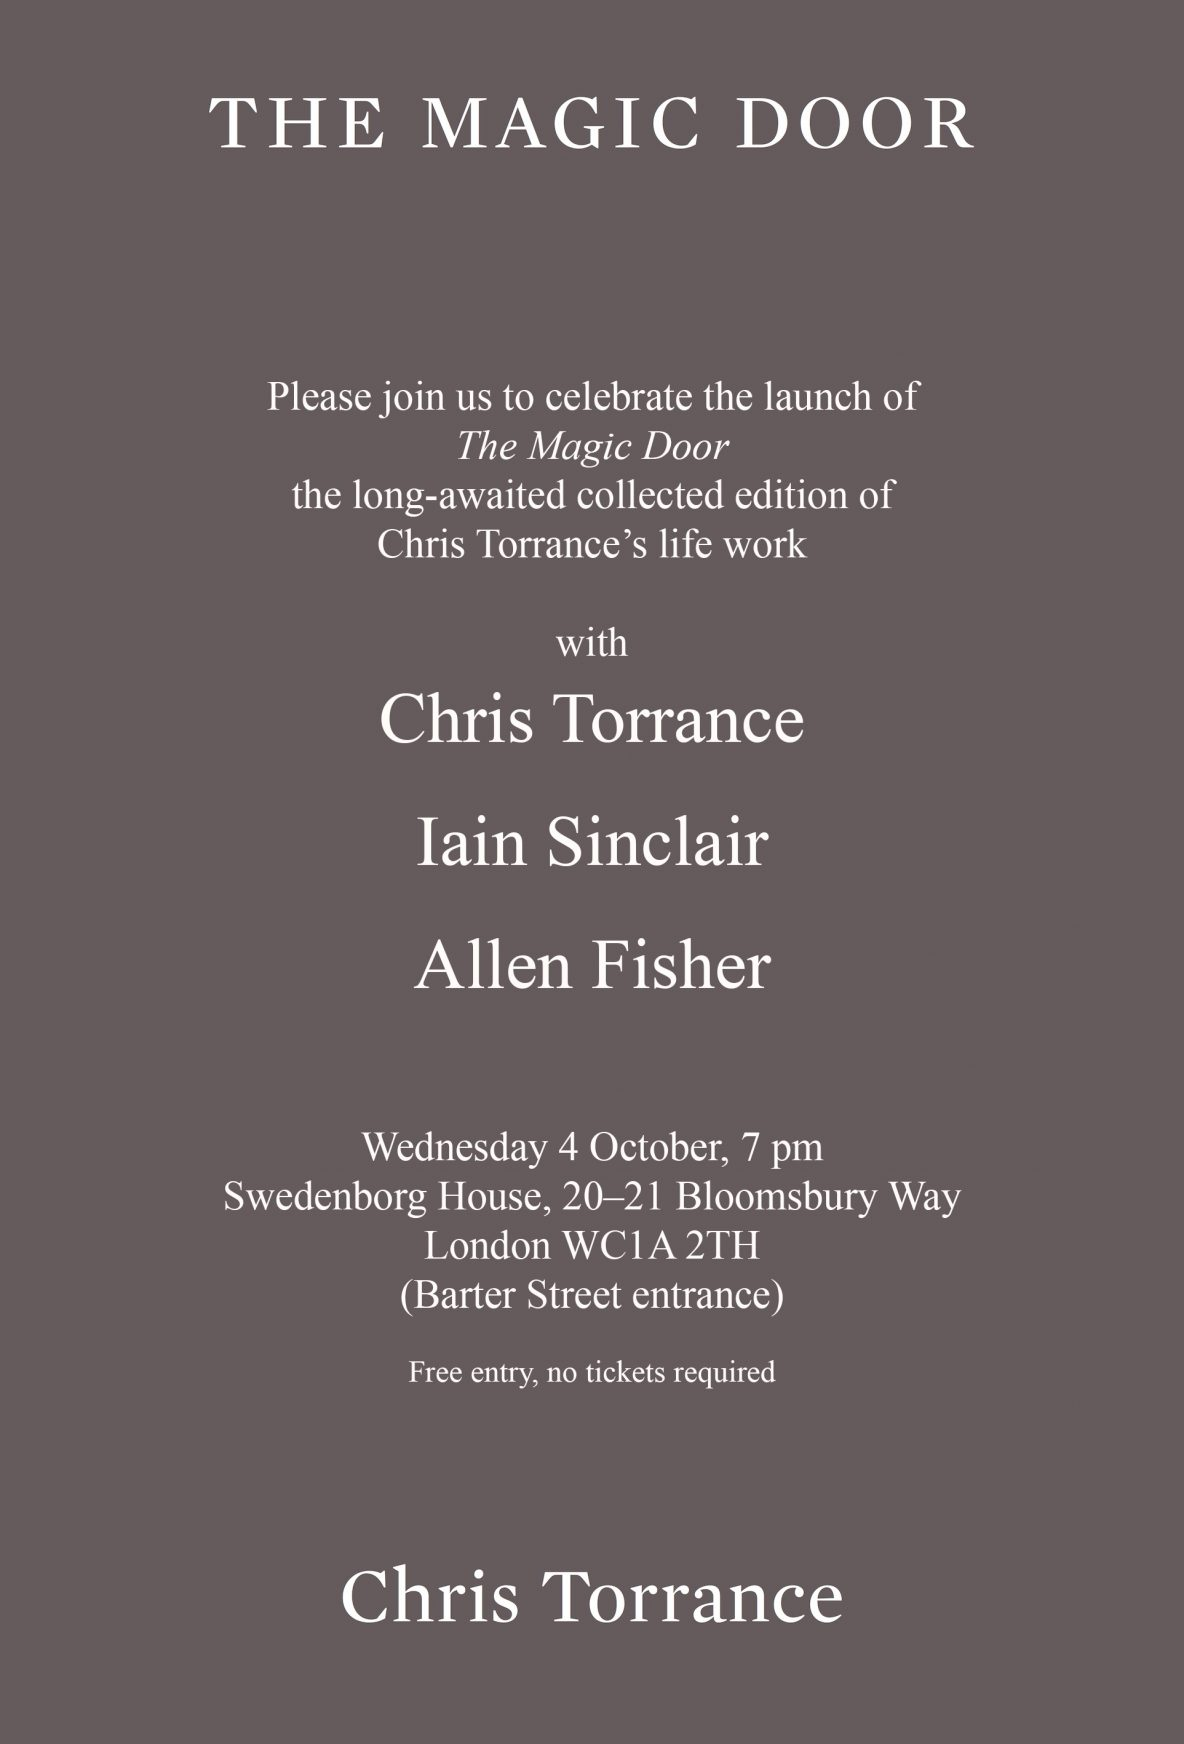 Chris Torrance The Magic Door London launch flyer